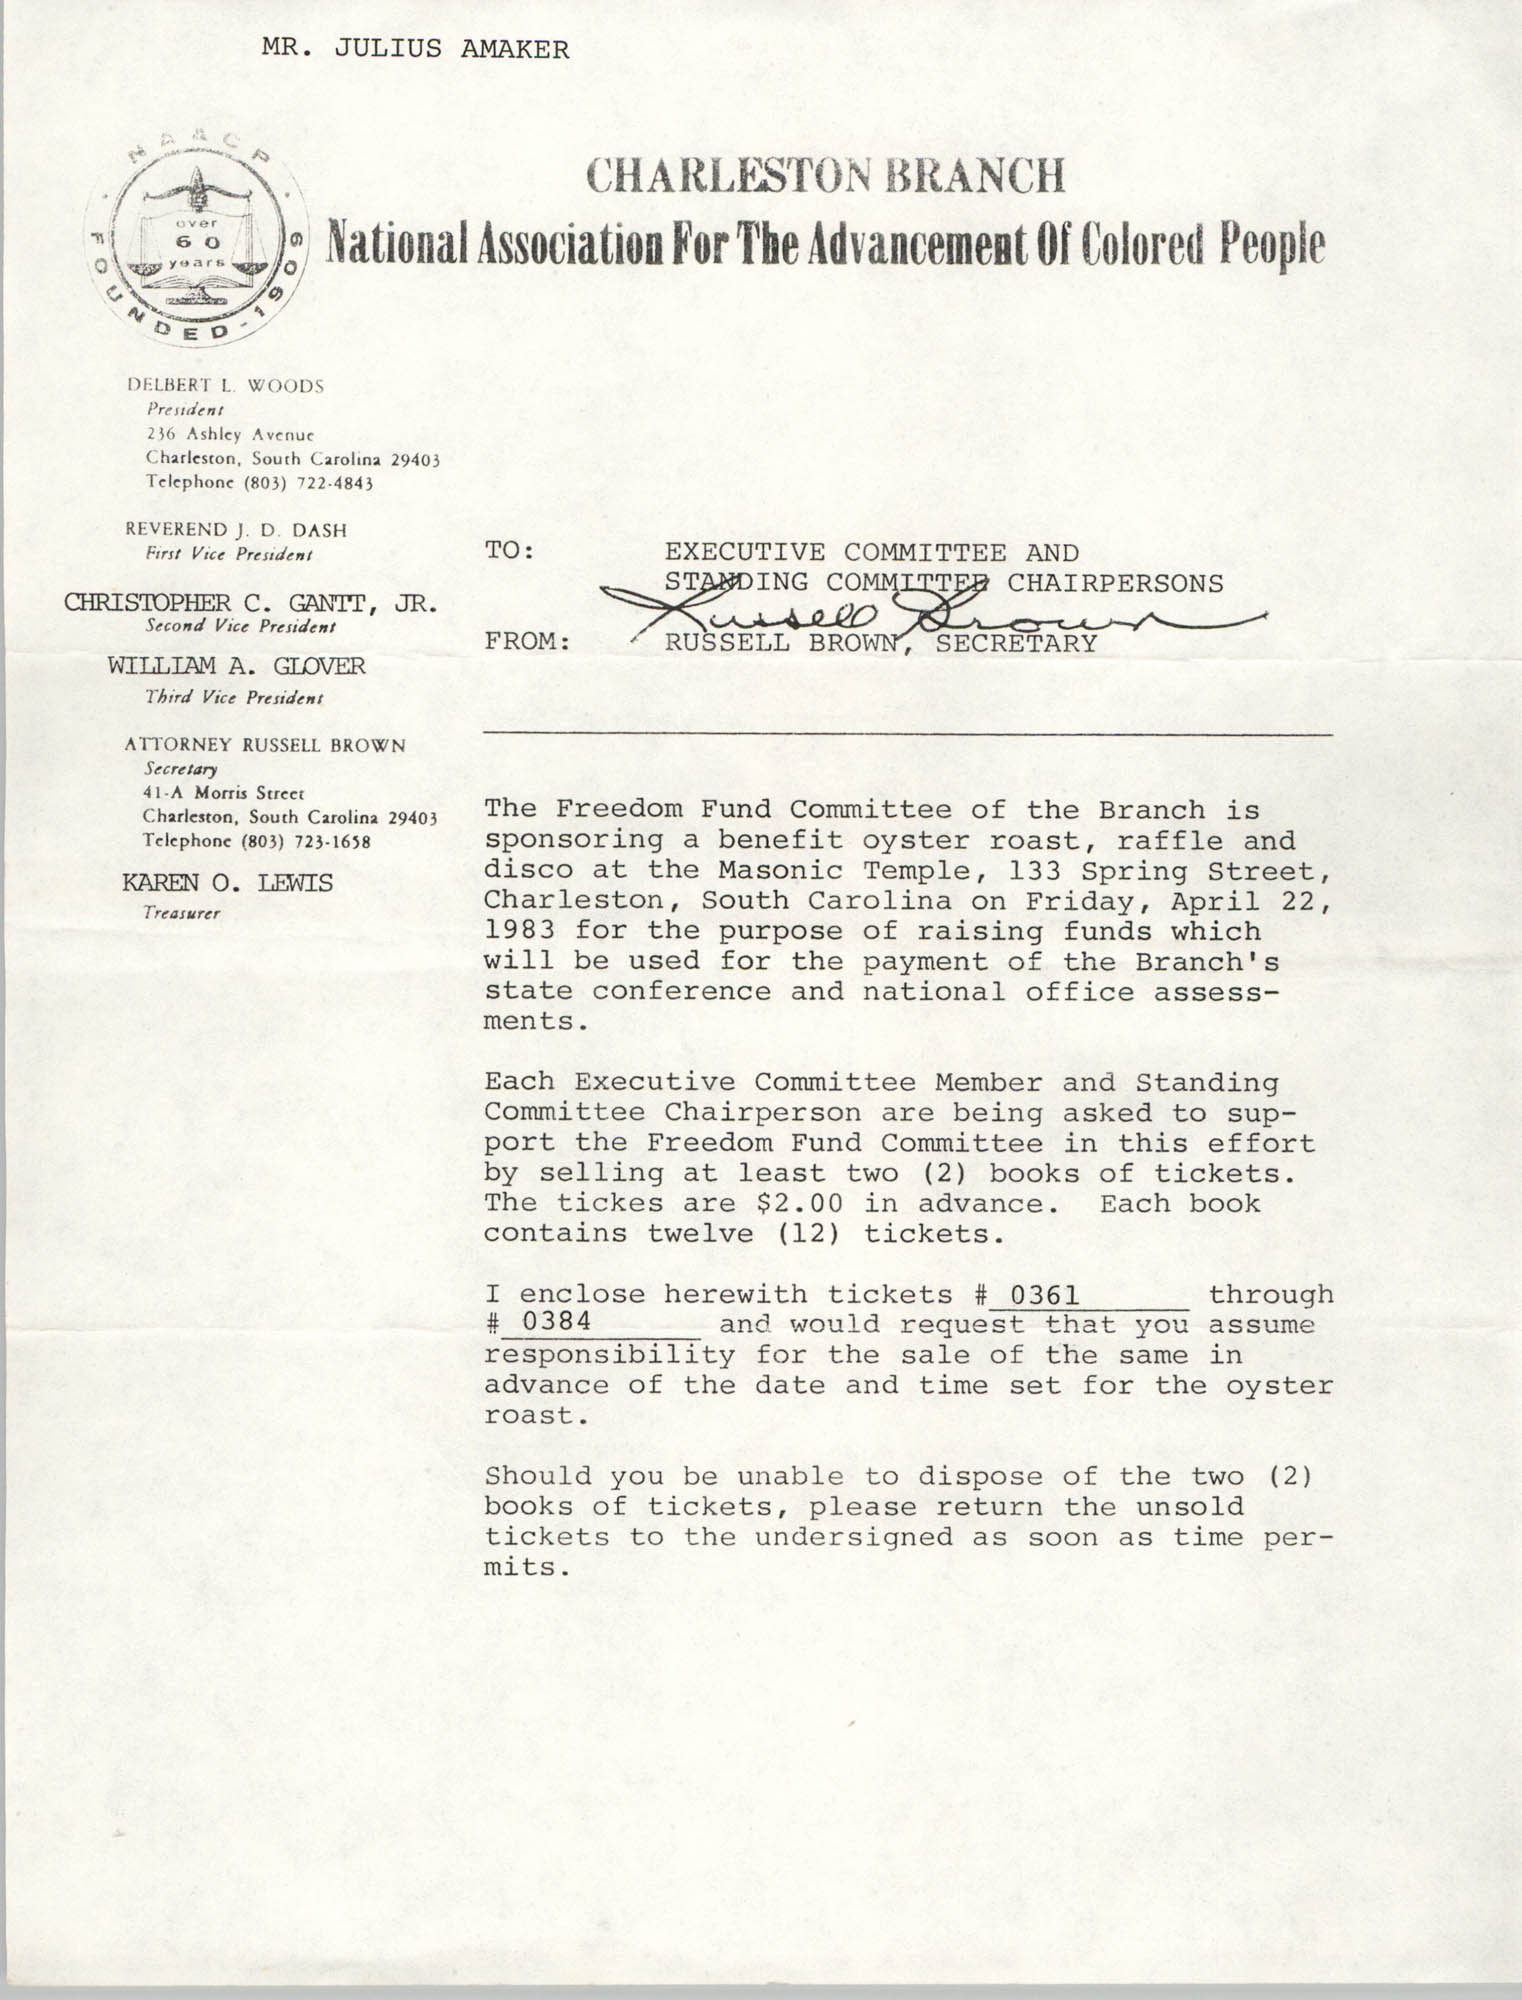 Memorandum, Russell Brown, Charleston Branch of the NAACP